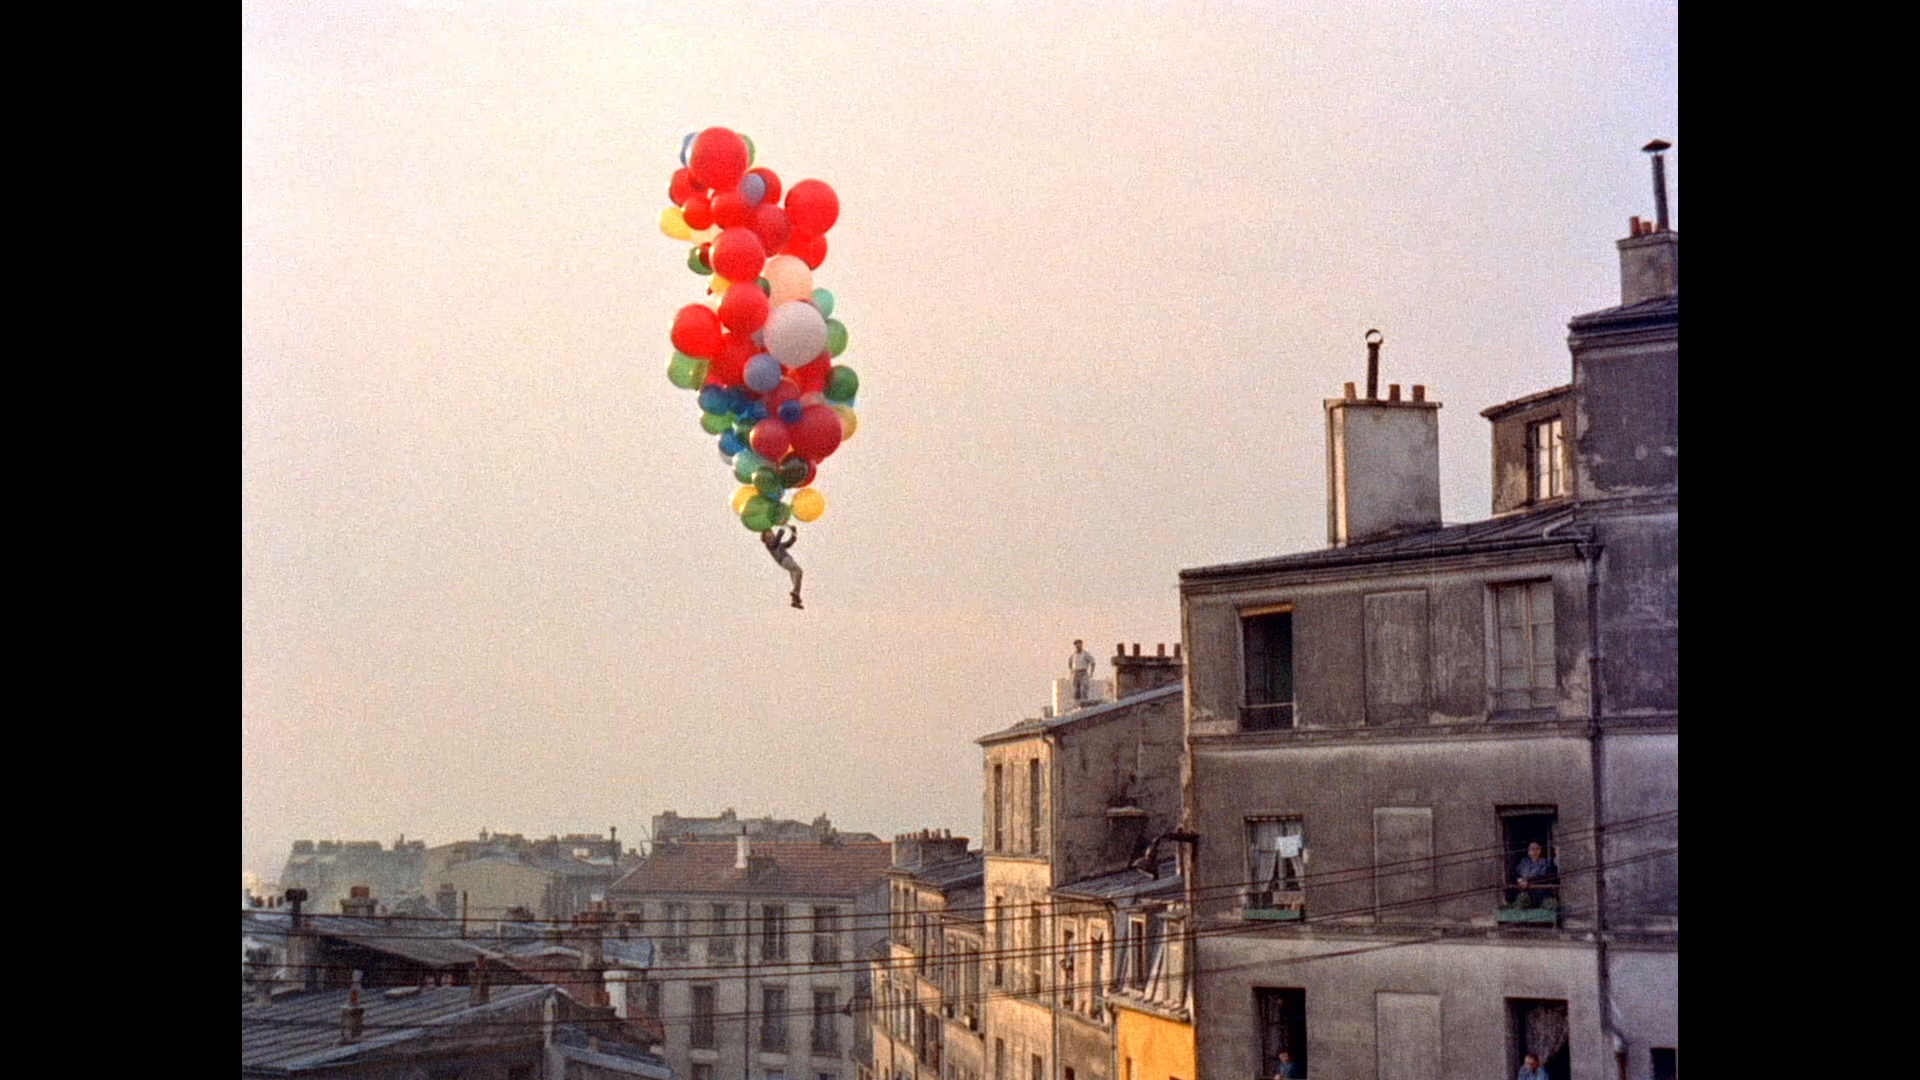 the red balloon movie analysis critique The theme of the film is the corruption of innocence, seen in the journey of the boy and his red balloon interestingly, the director of this classic, albert lamorisse, was also the creator of the strategy boardgame, risk.